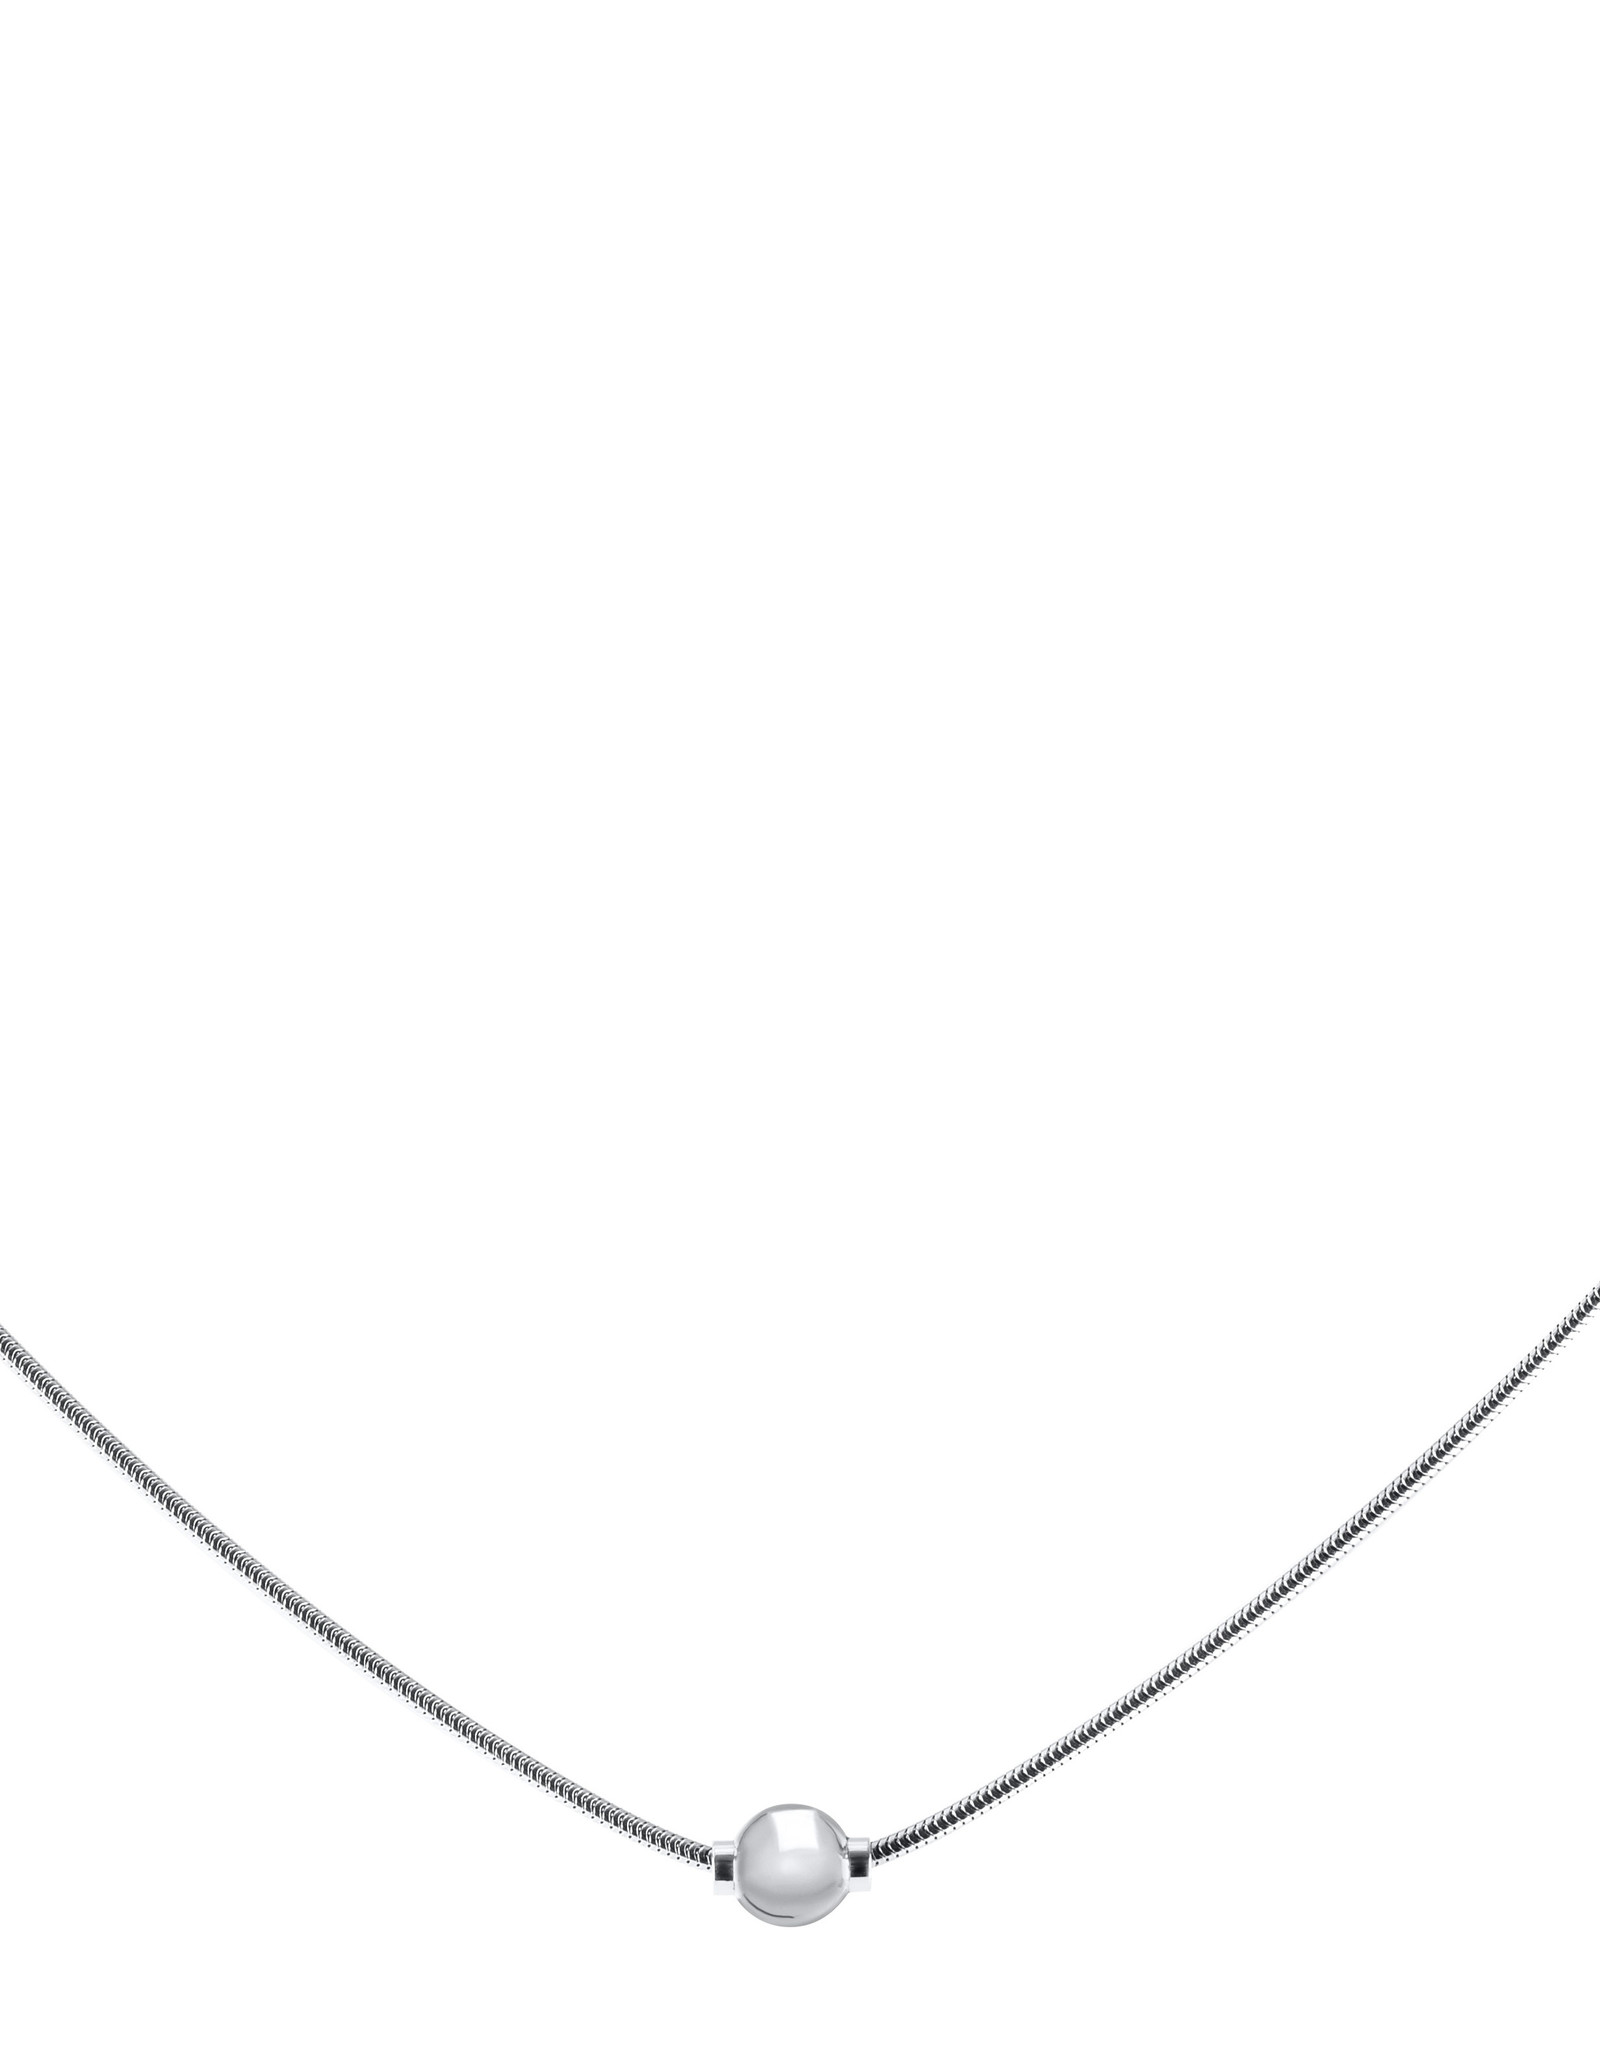 """Lestage - 18"""" Classic Cape Cod Snake Necklace - Single Ball"""